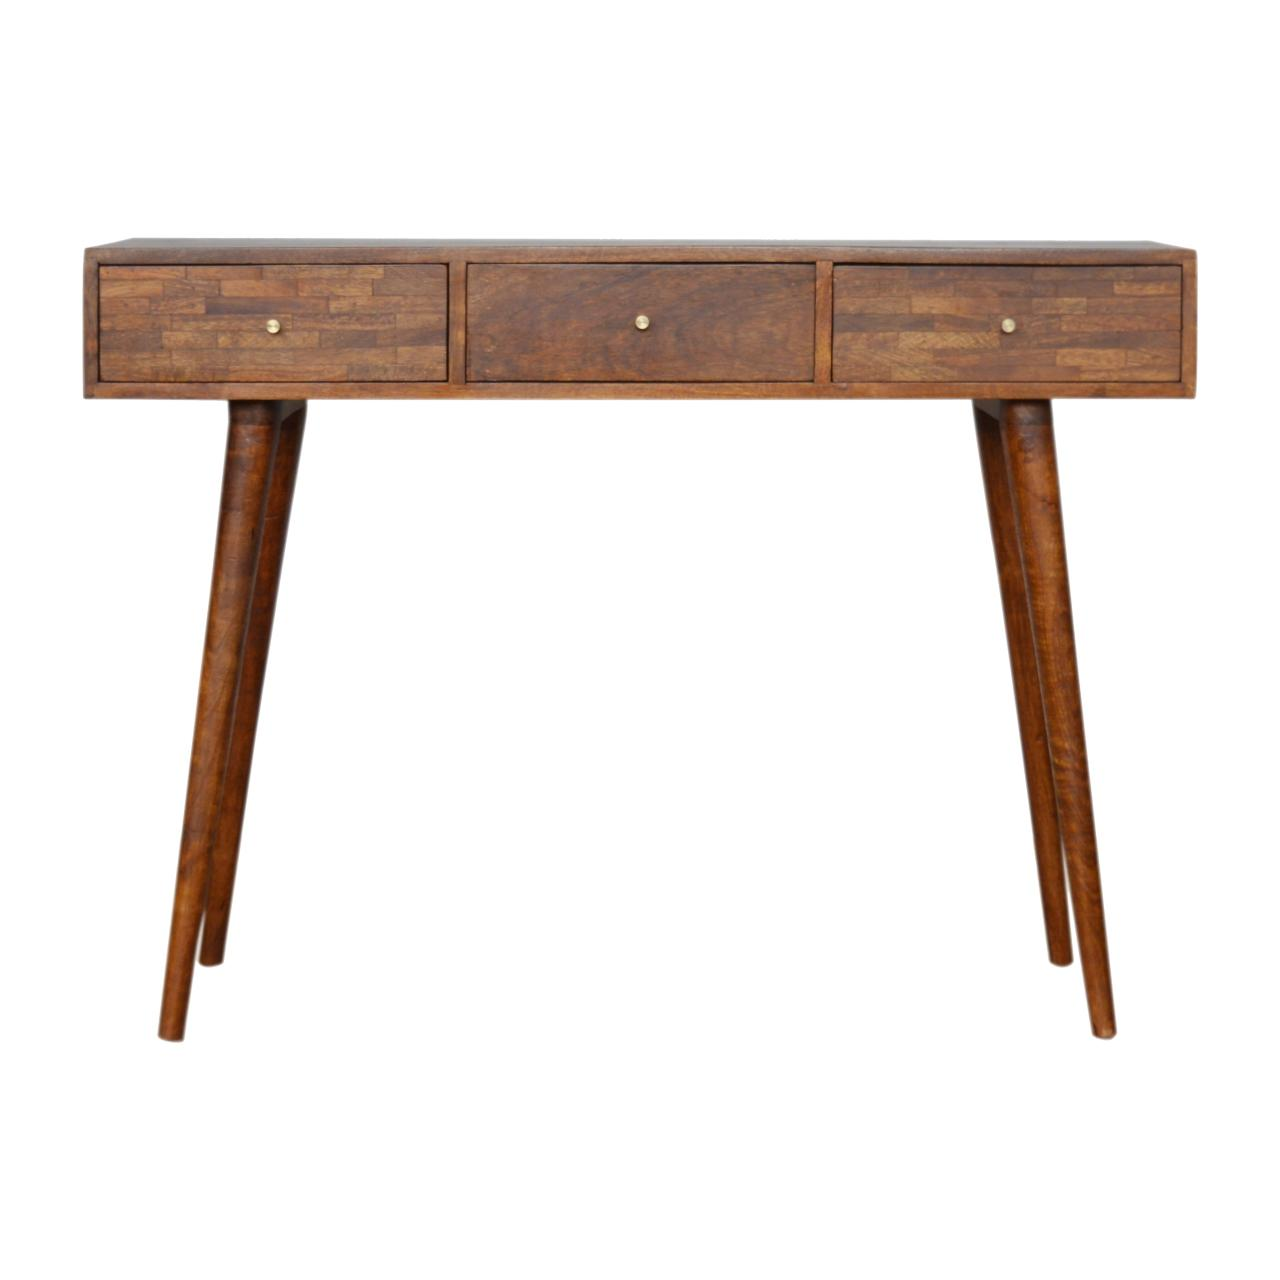 3 Drawer Mixed Chestnut Console Table